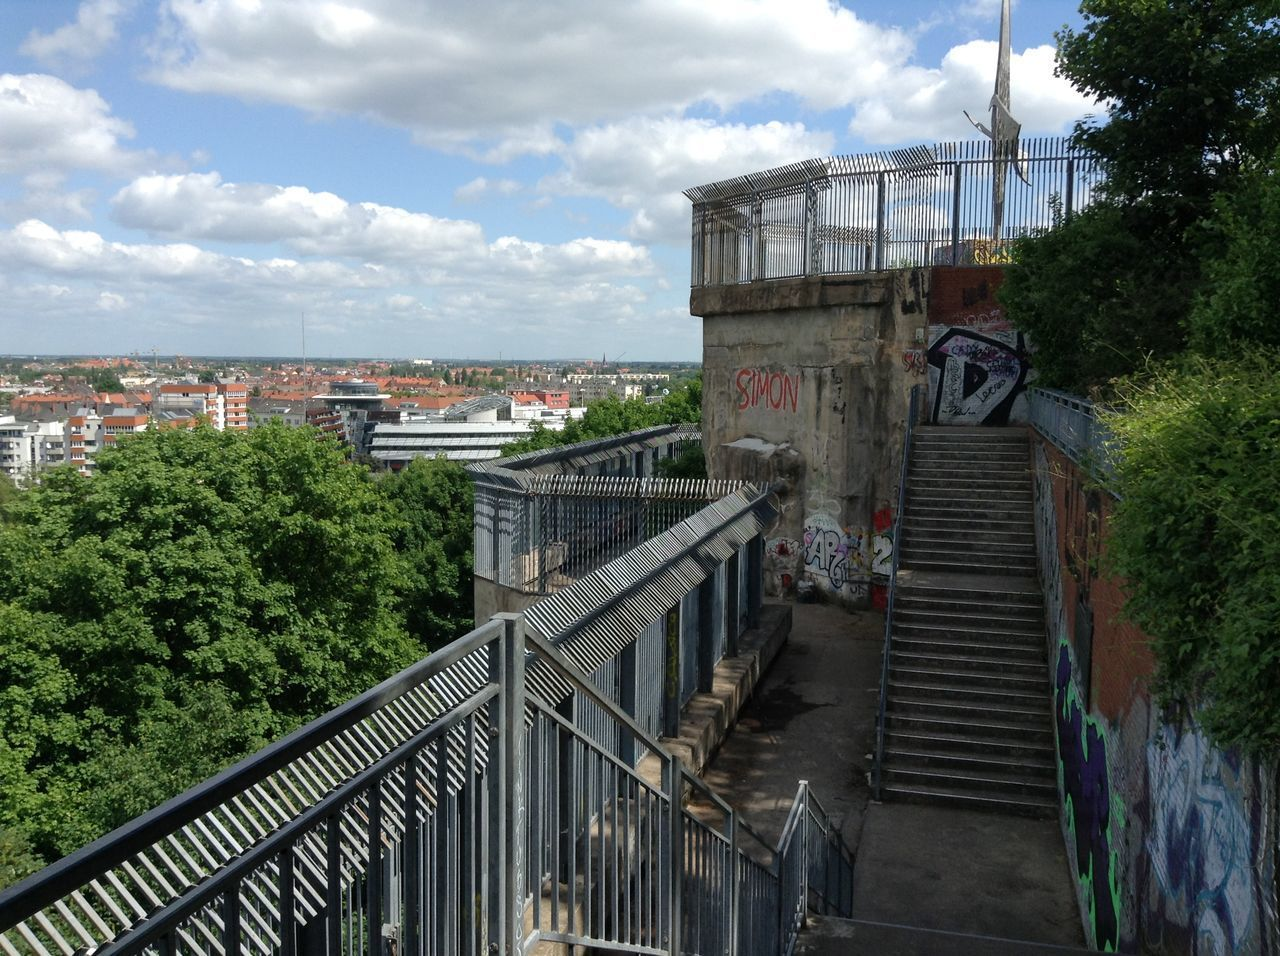 WOMAN STANDING ON STAIRCASE BY BRIDGE IN CITY